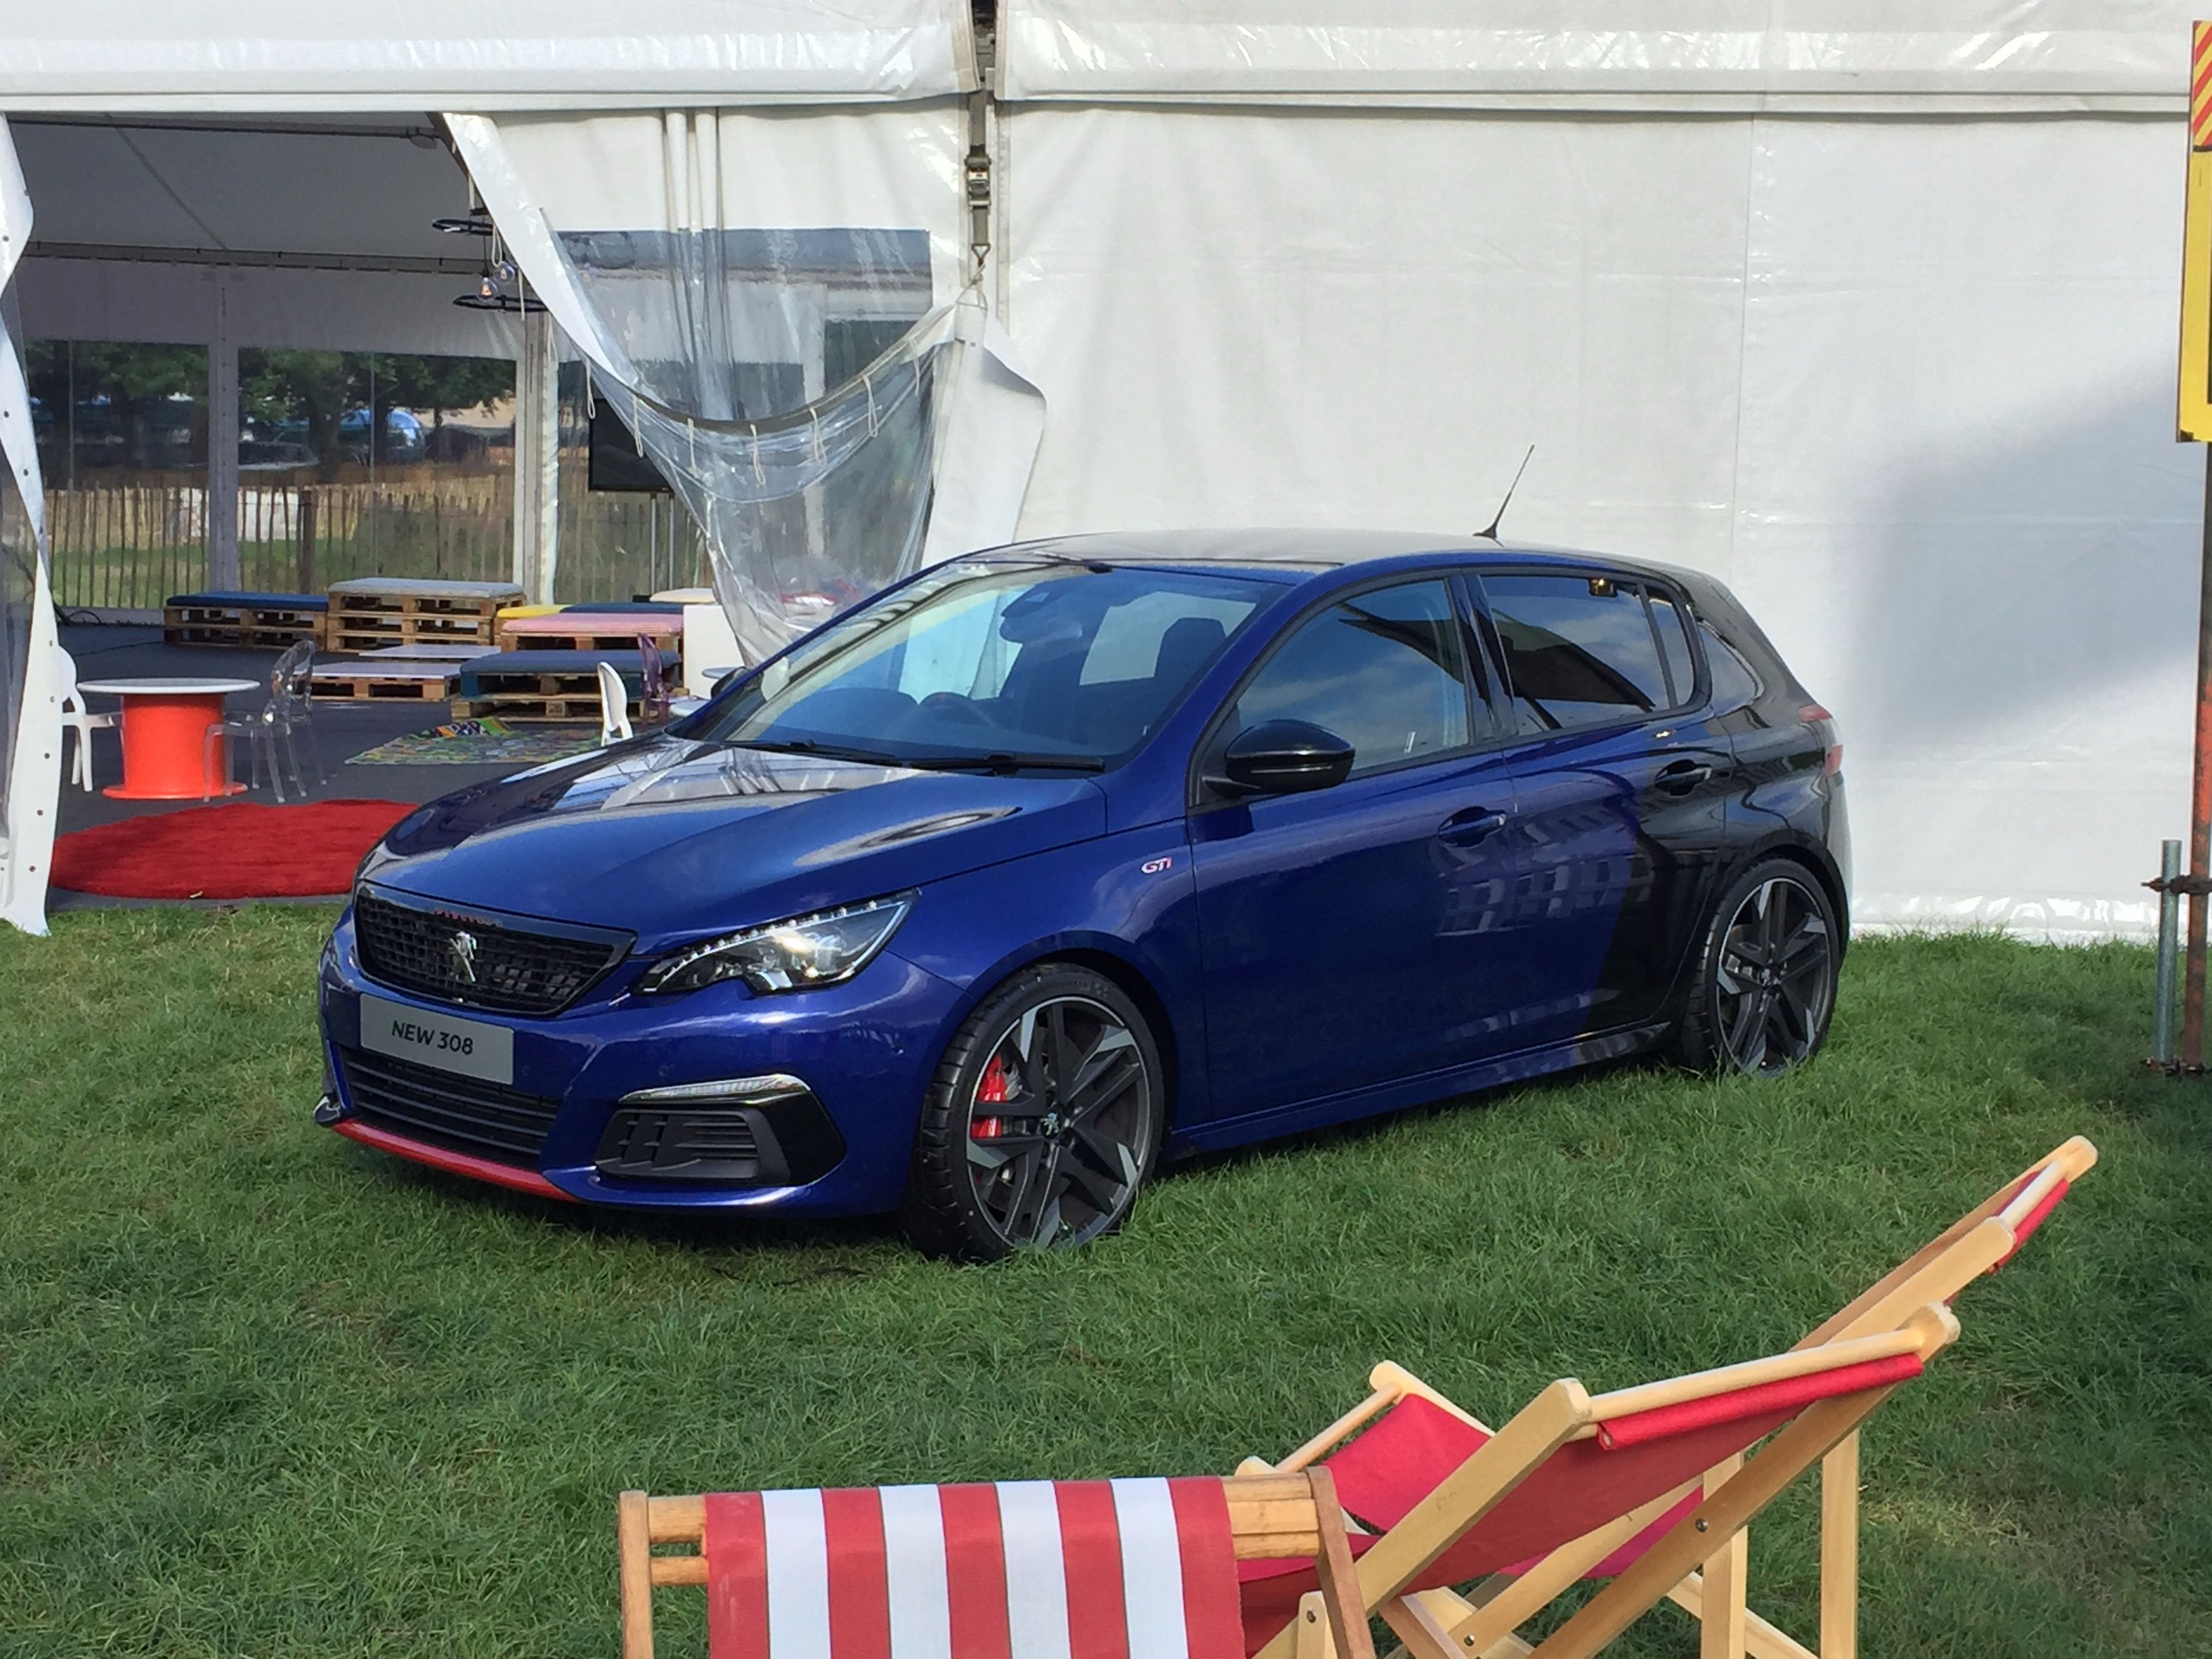 New 308 at Carfest North